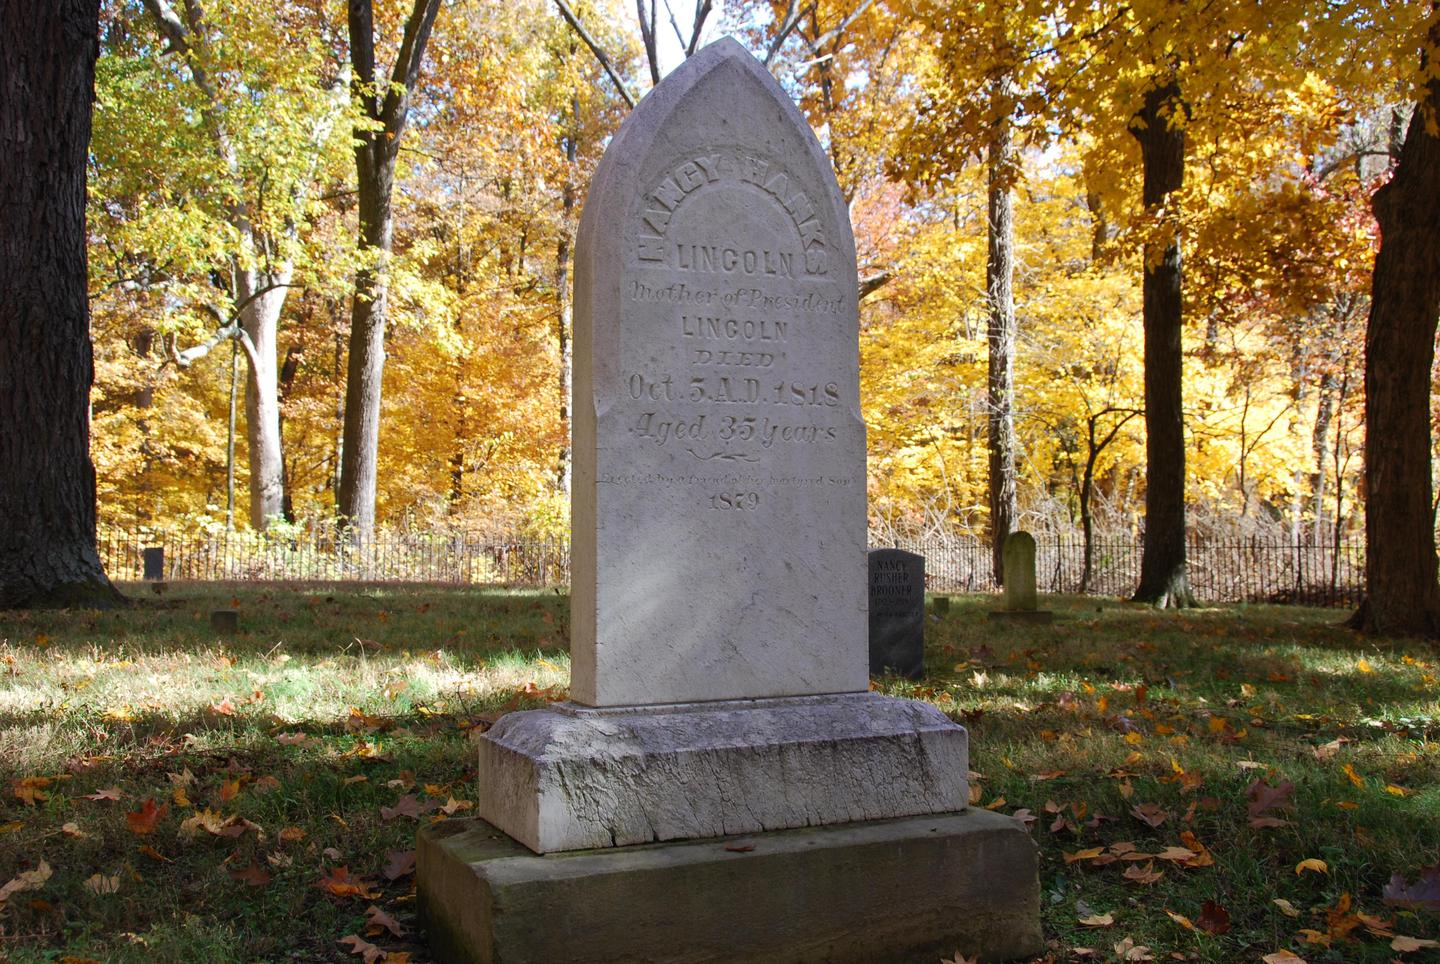 Gravesite of Nancy Hanks LincolnThe headstone, erected in 1879, marks the burial spot of Abraham Lincoln's mother, who died of milk sickness in 1818.